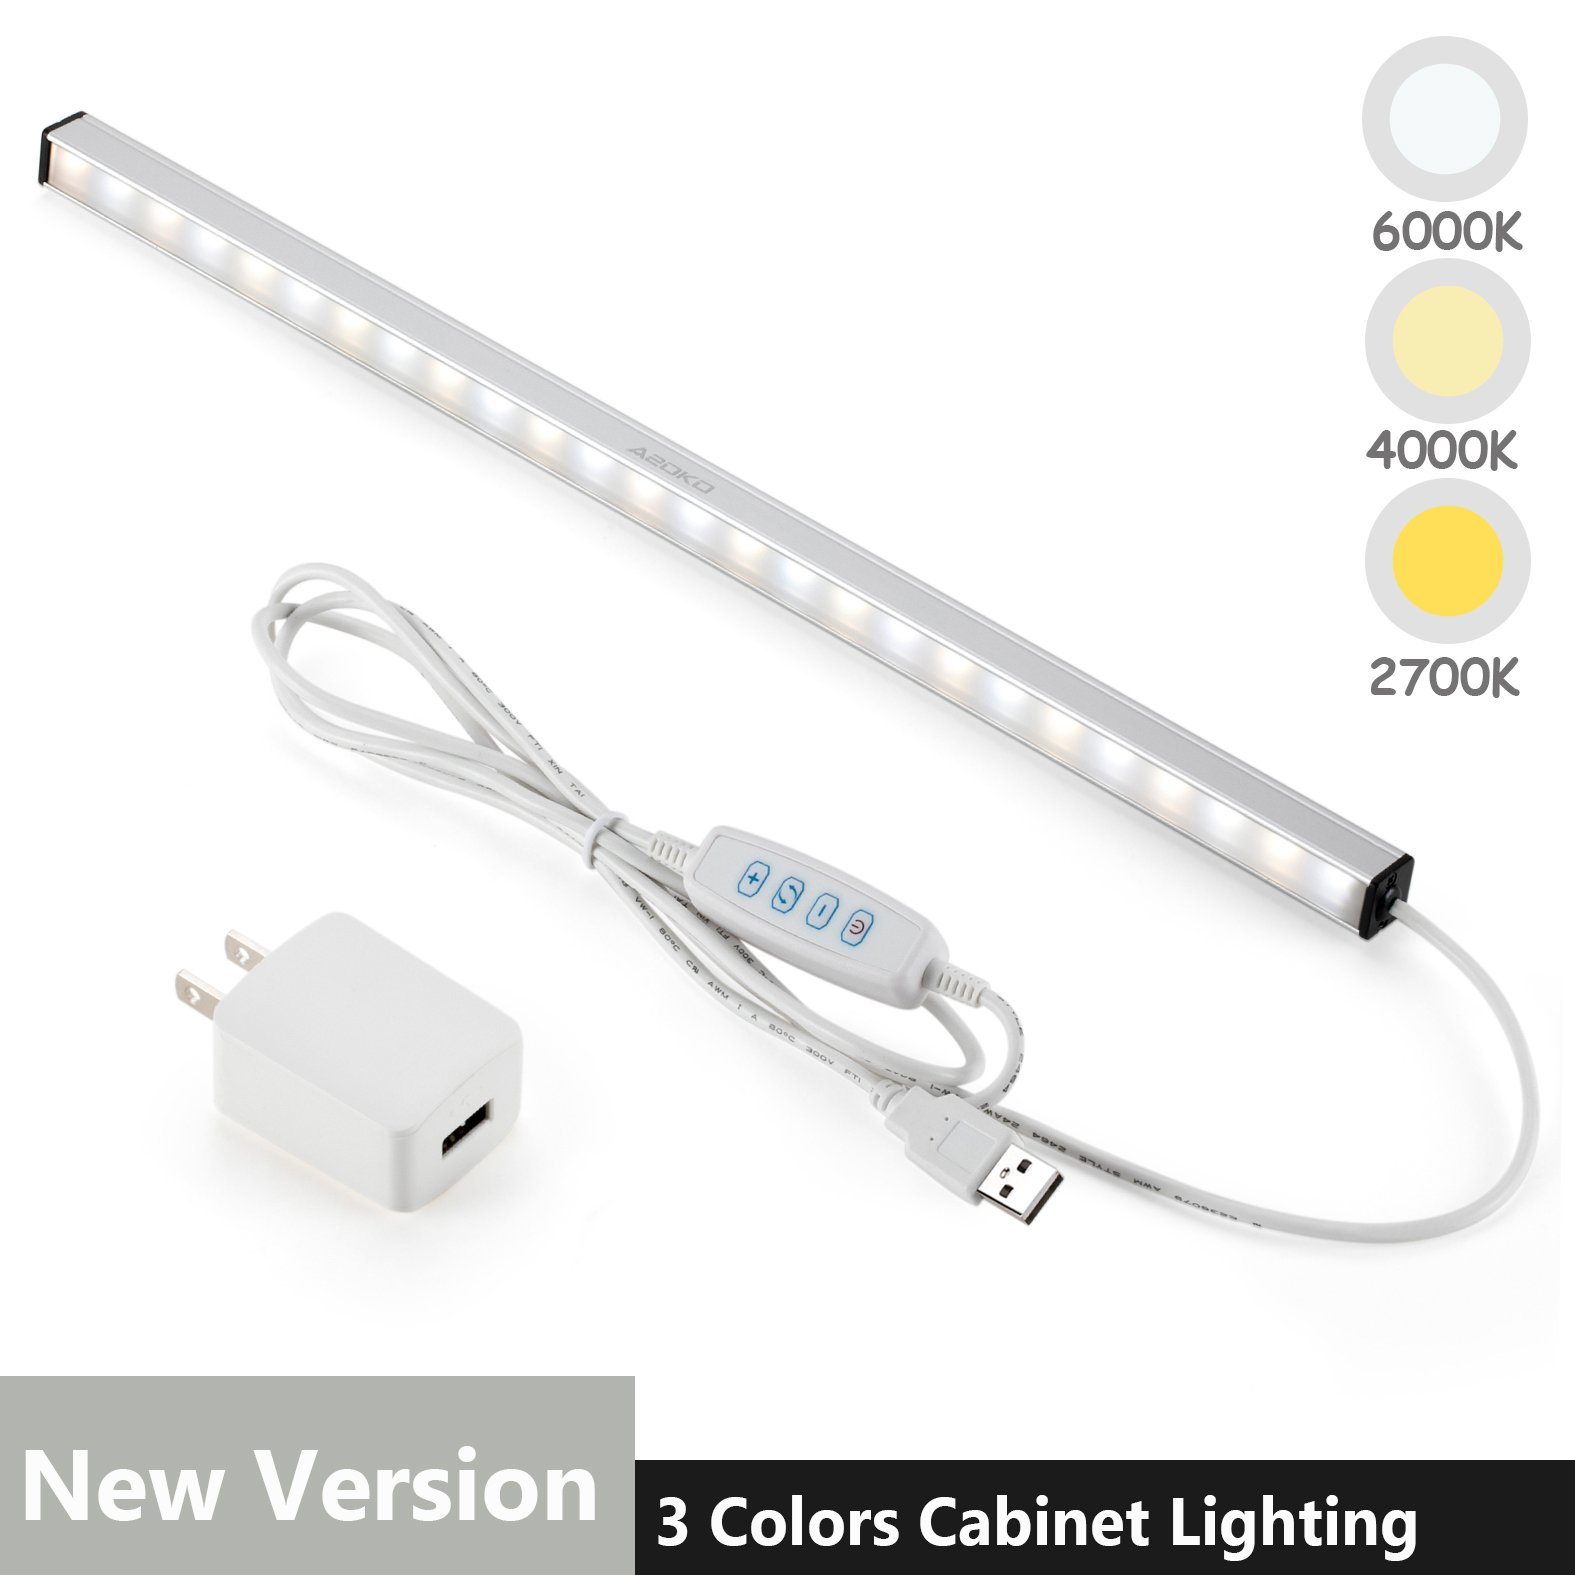 LED Under Cabinet Lighting Bar Built-in Magnets, Dimmable, 3 Color Temperature, 14.5 inches, USB Powered Counter Lighting Bar, LED Closet Light. (with UL Plug)